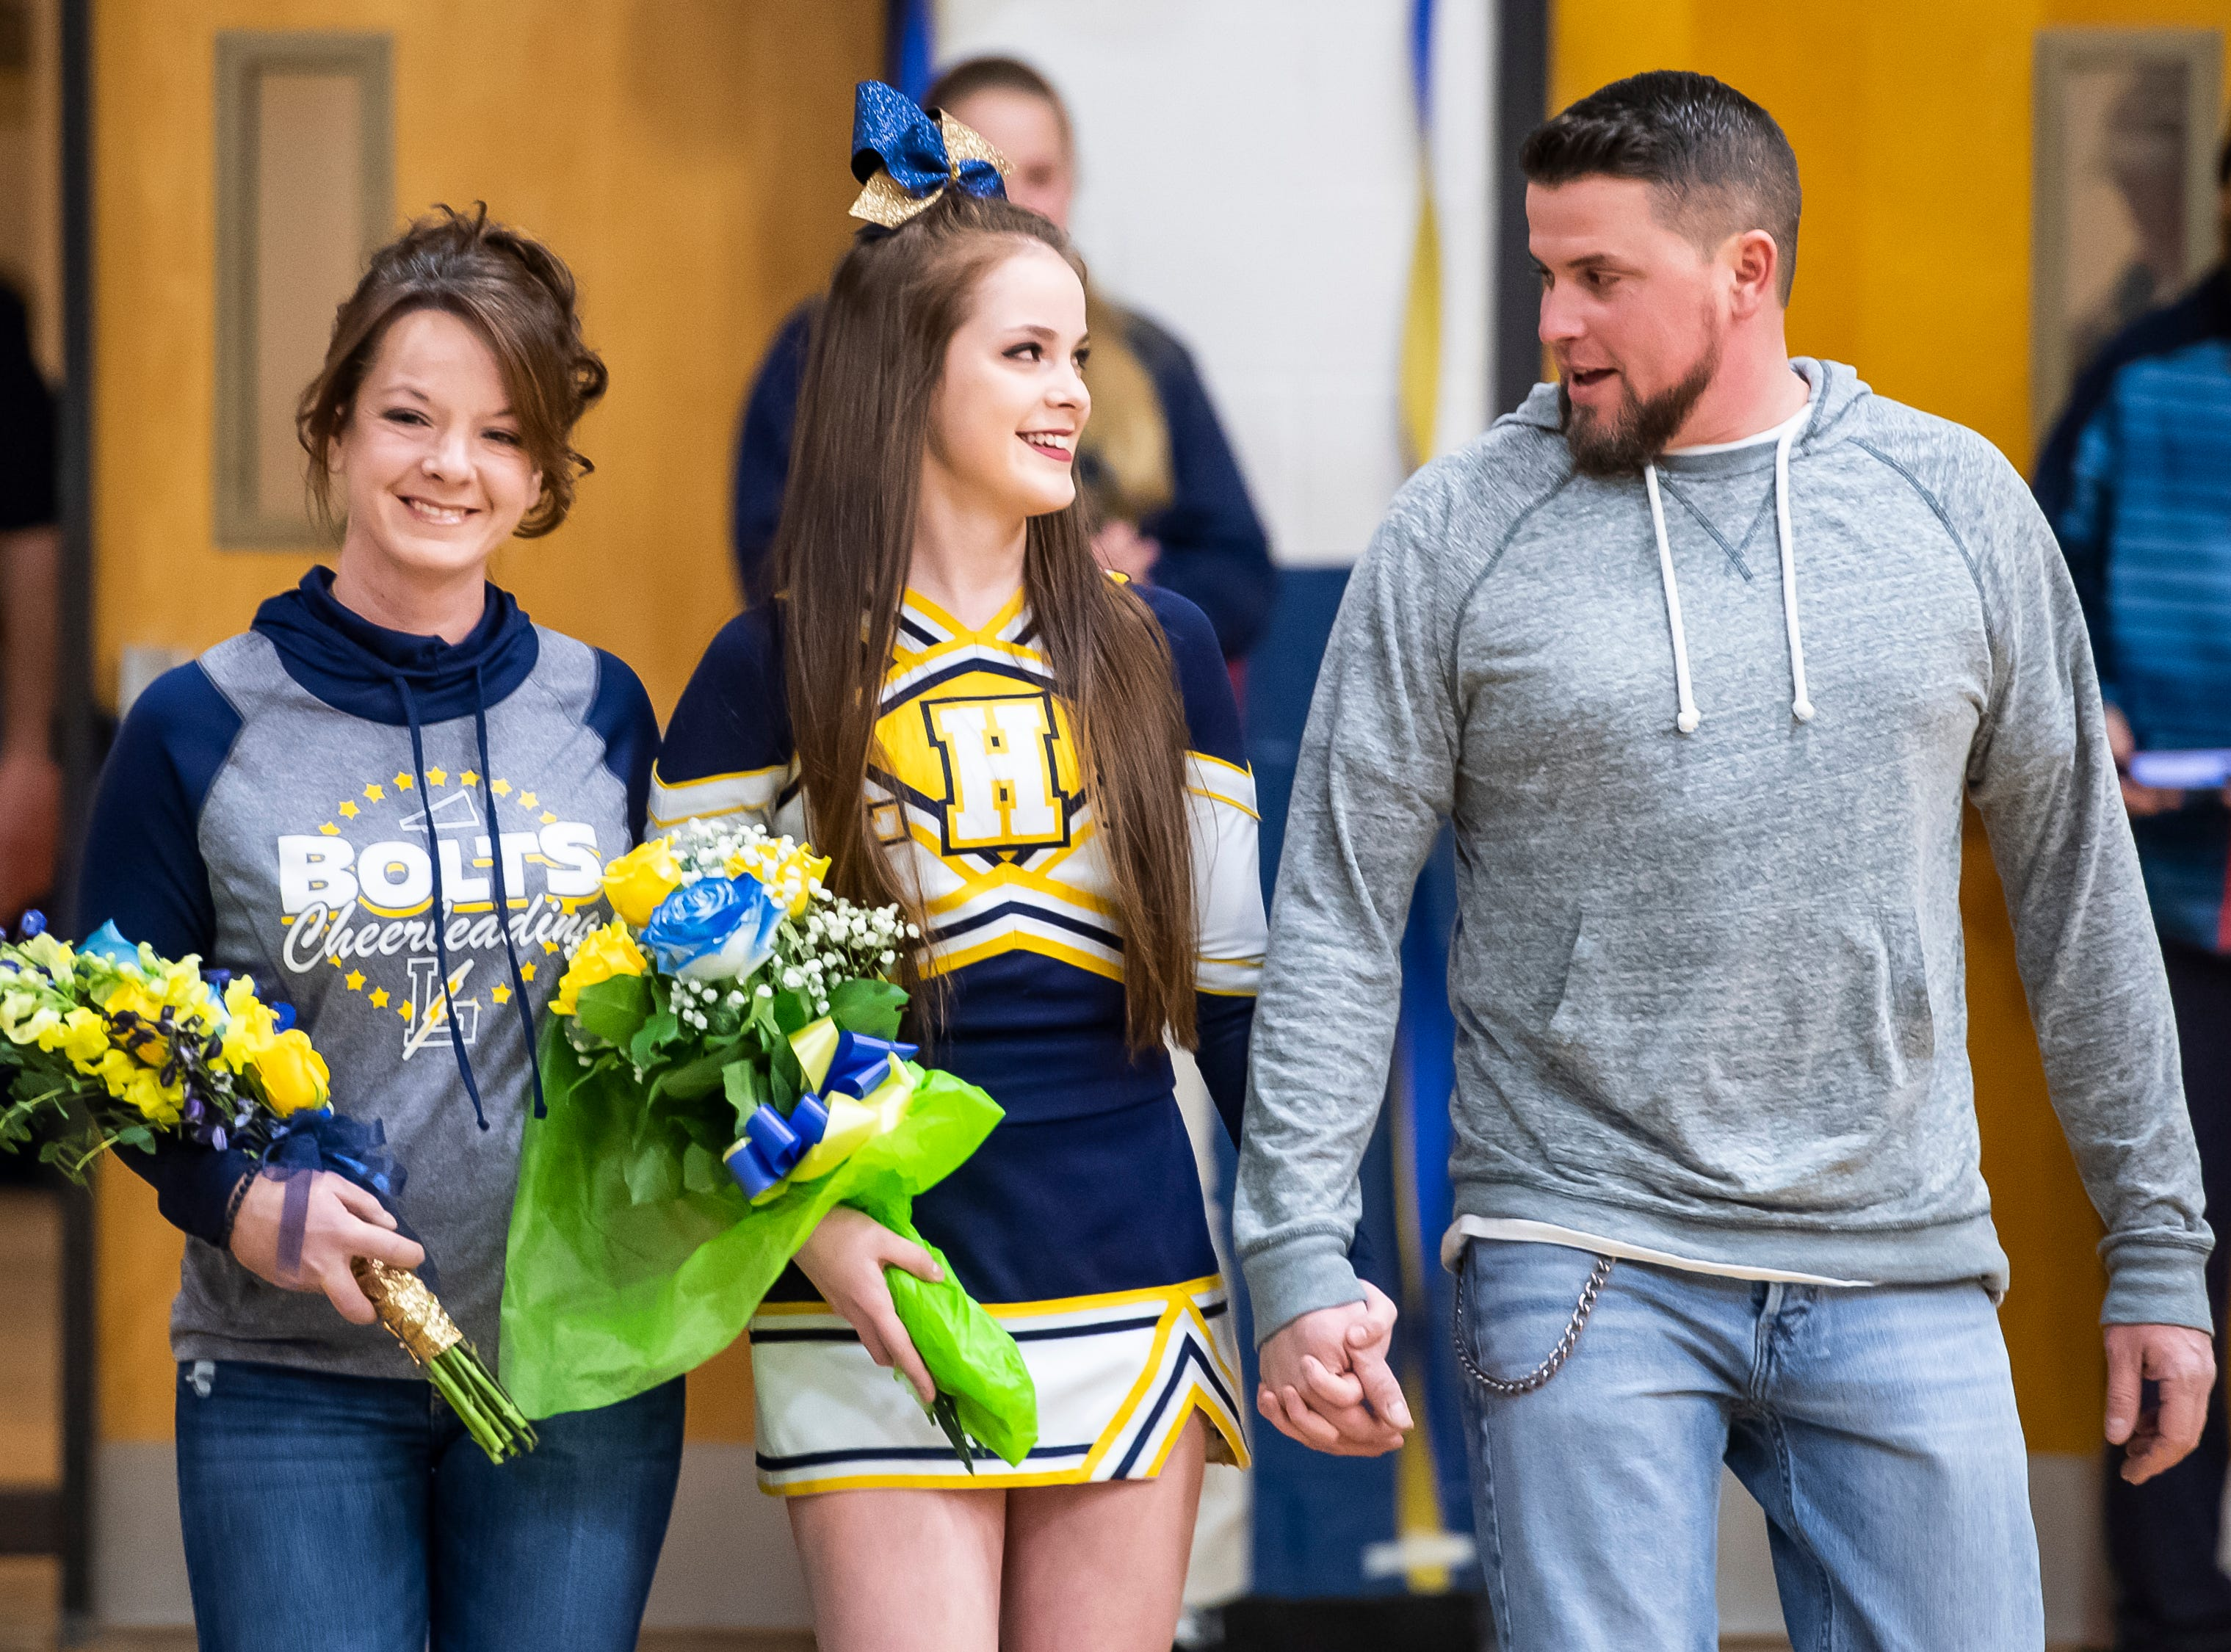 Littlestown cheerleader Jada Mummert is honored on senior night prior to a match against Bermudian Springs in Littlestown Thursday, January 24, 2019. The Bolts fell 62-12.